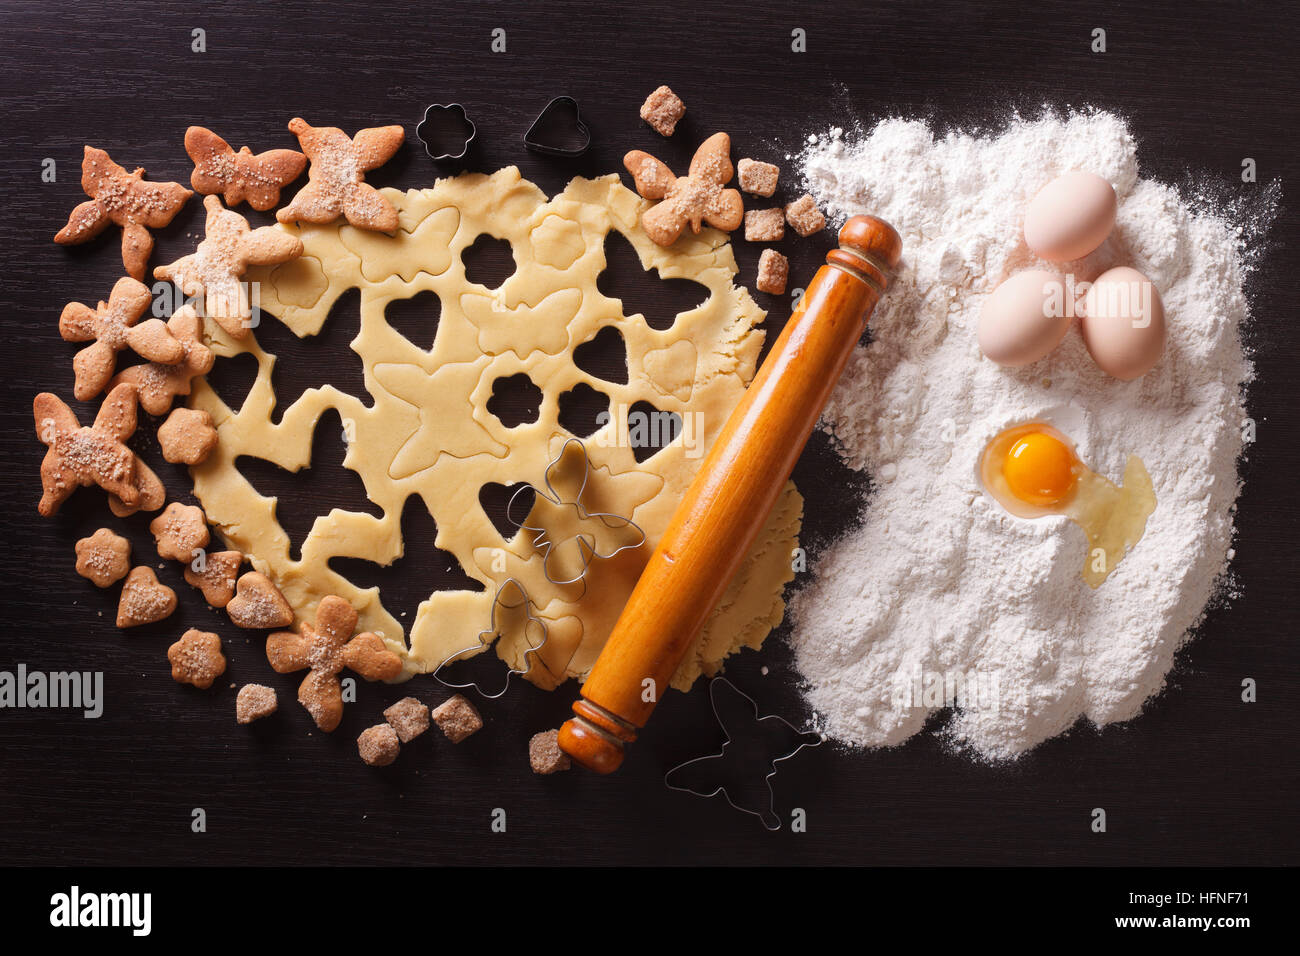 Cooking figure pastry on the table and ingredients. horizontal view from above - Stock Image